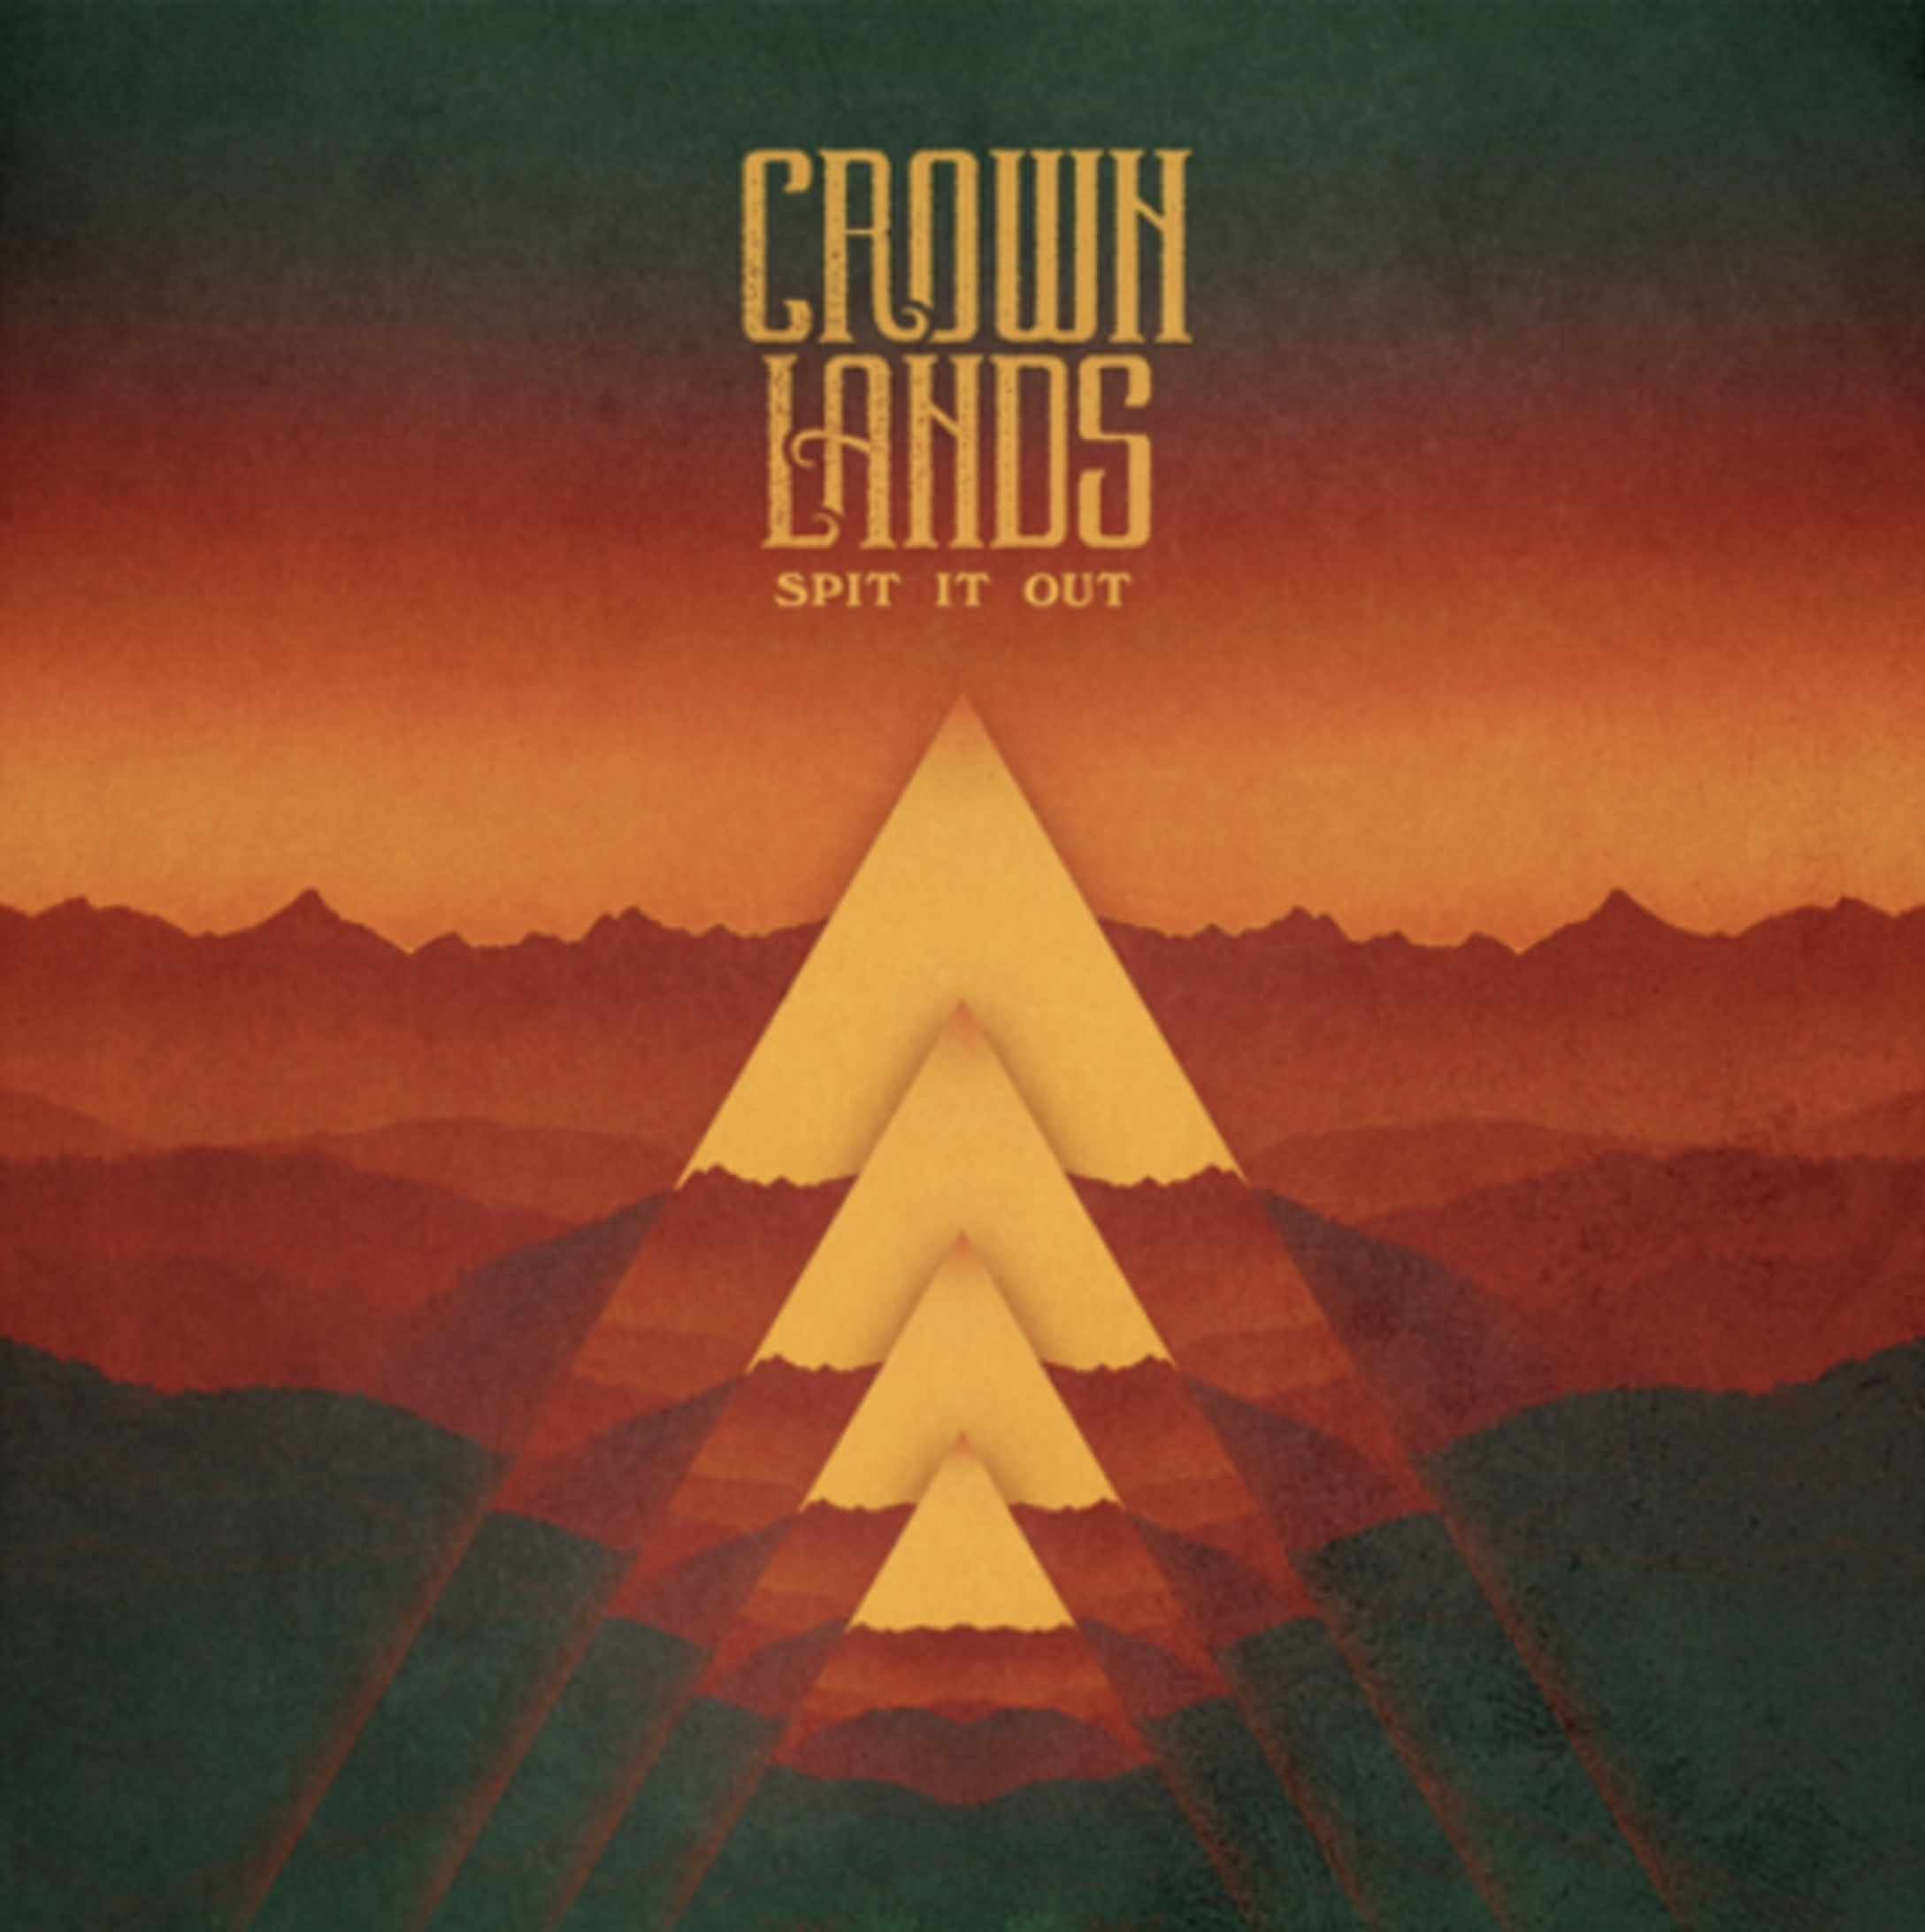 Crown Lands Debut Album Out This Spring